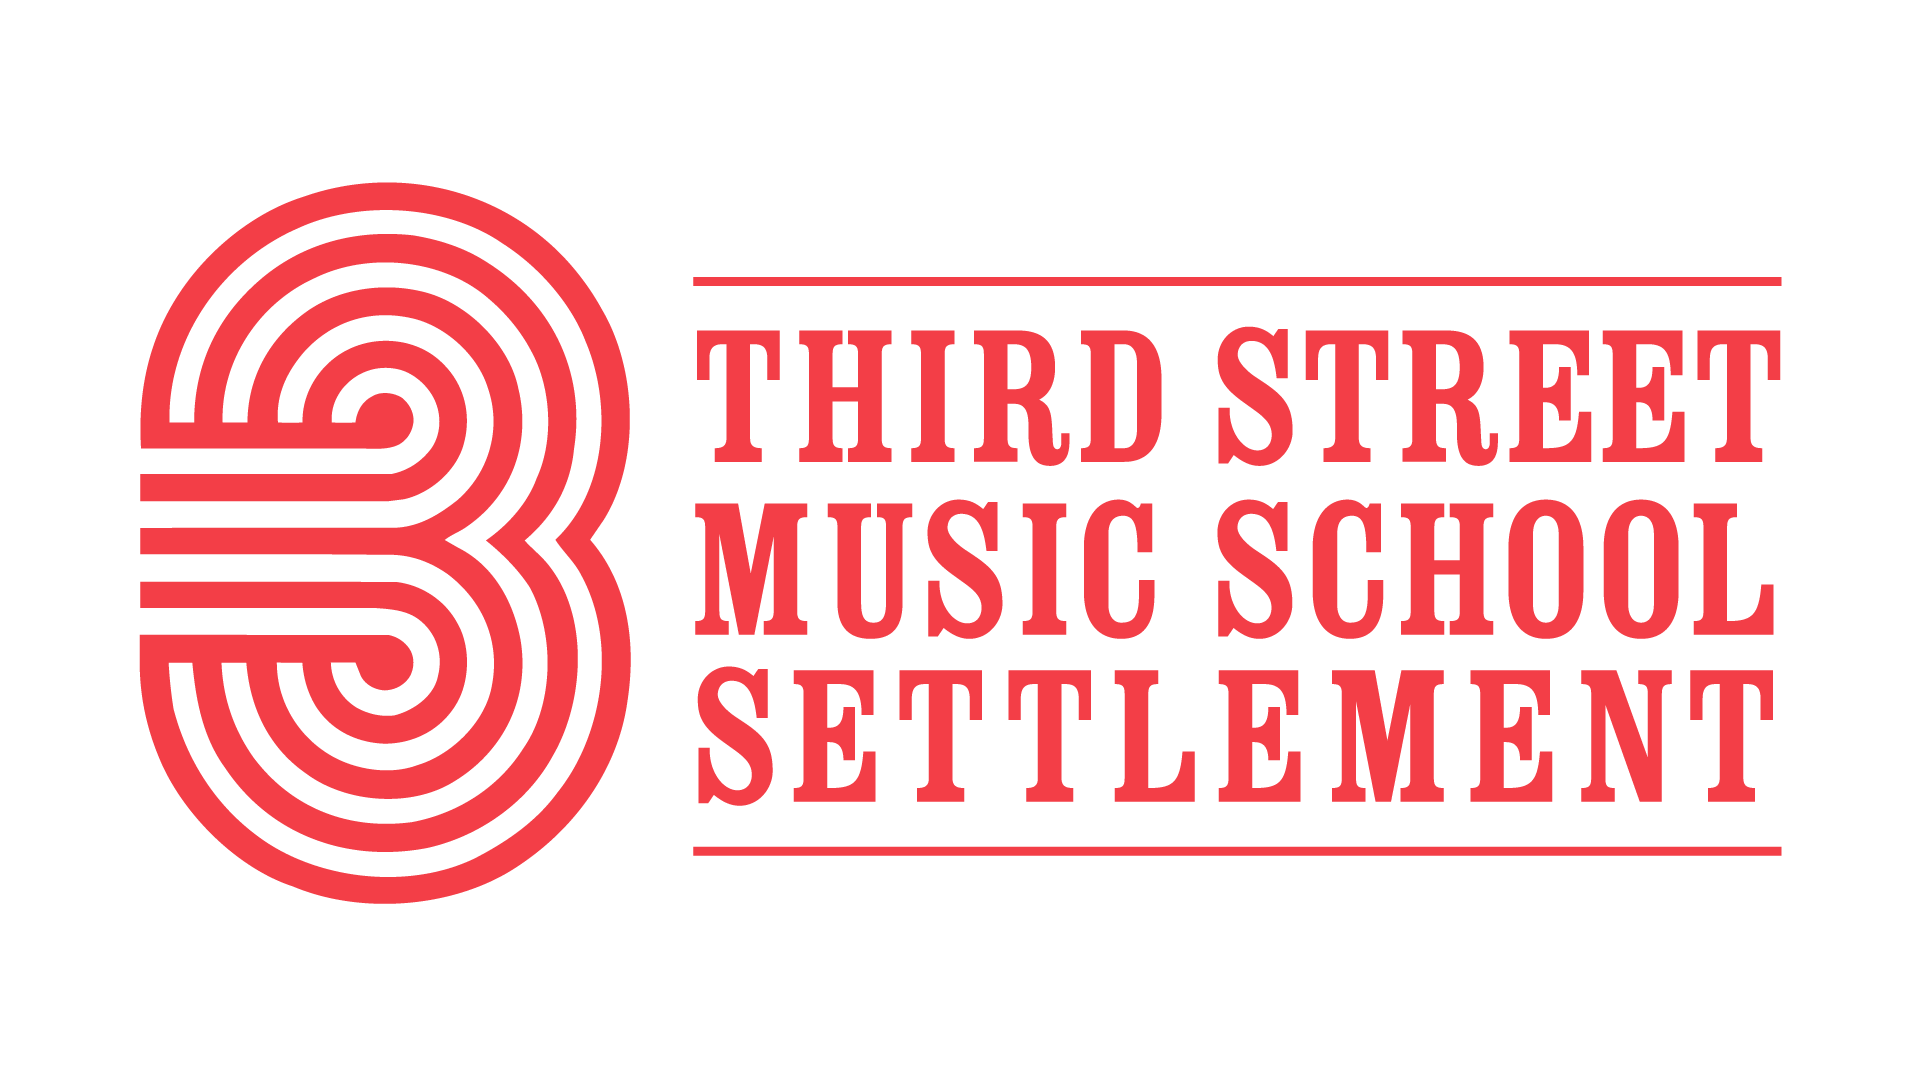 ThirdStreetSchool-logo-alpha-WEB.png